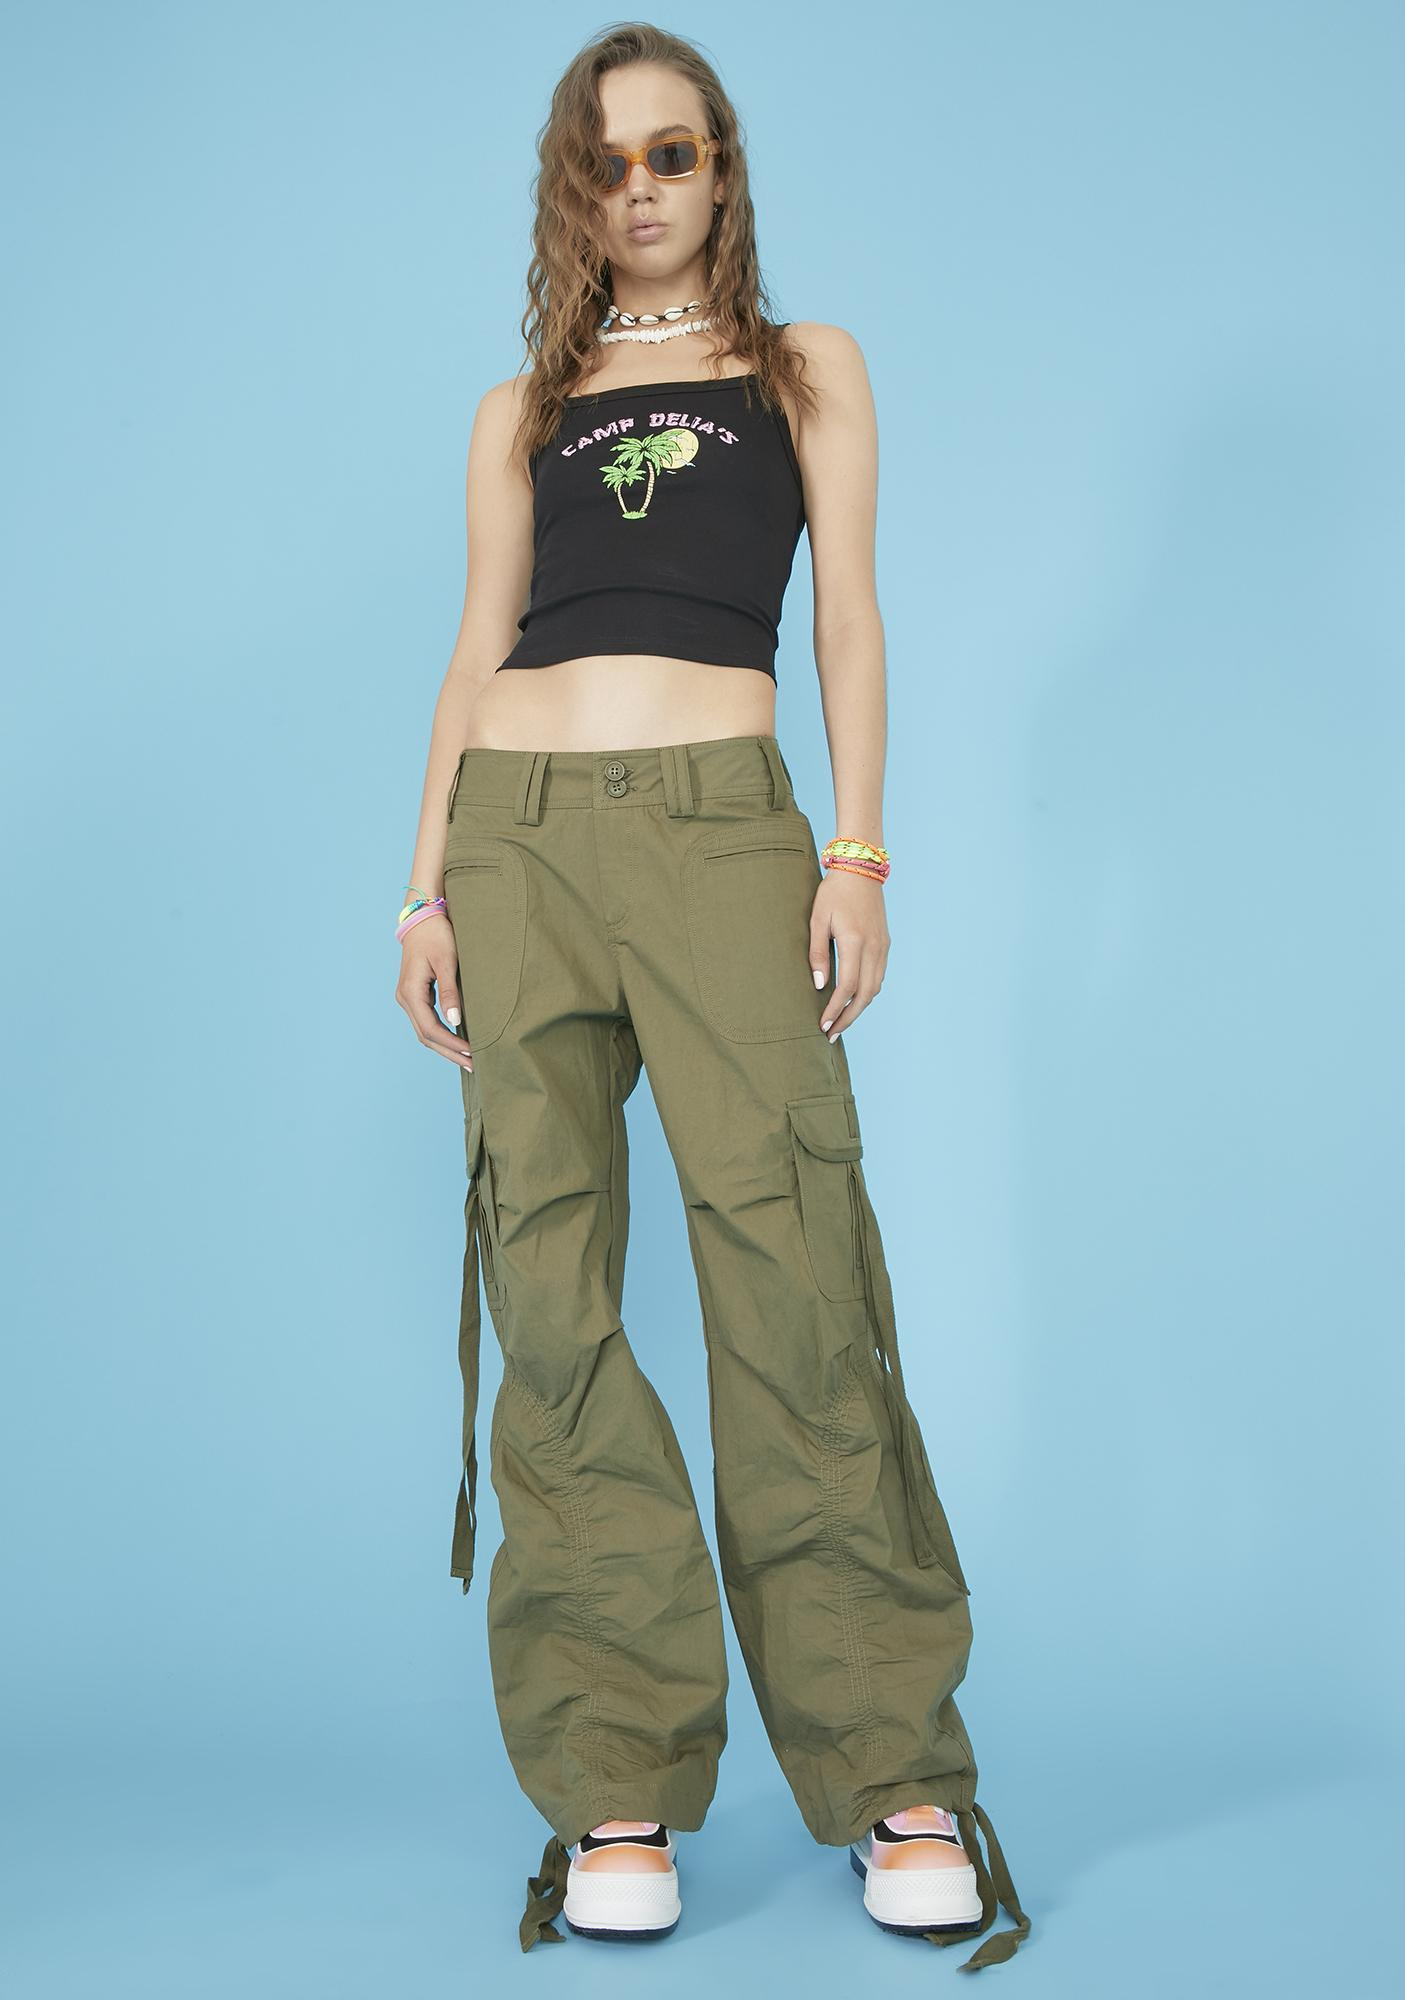 dELiA*s by Dolls Kill On My Grind Cargo Pants